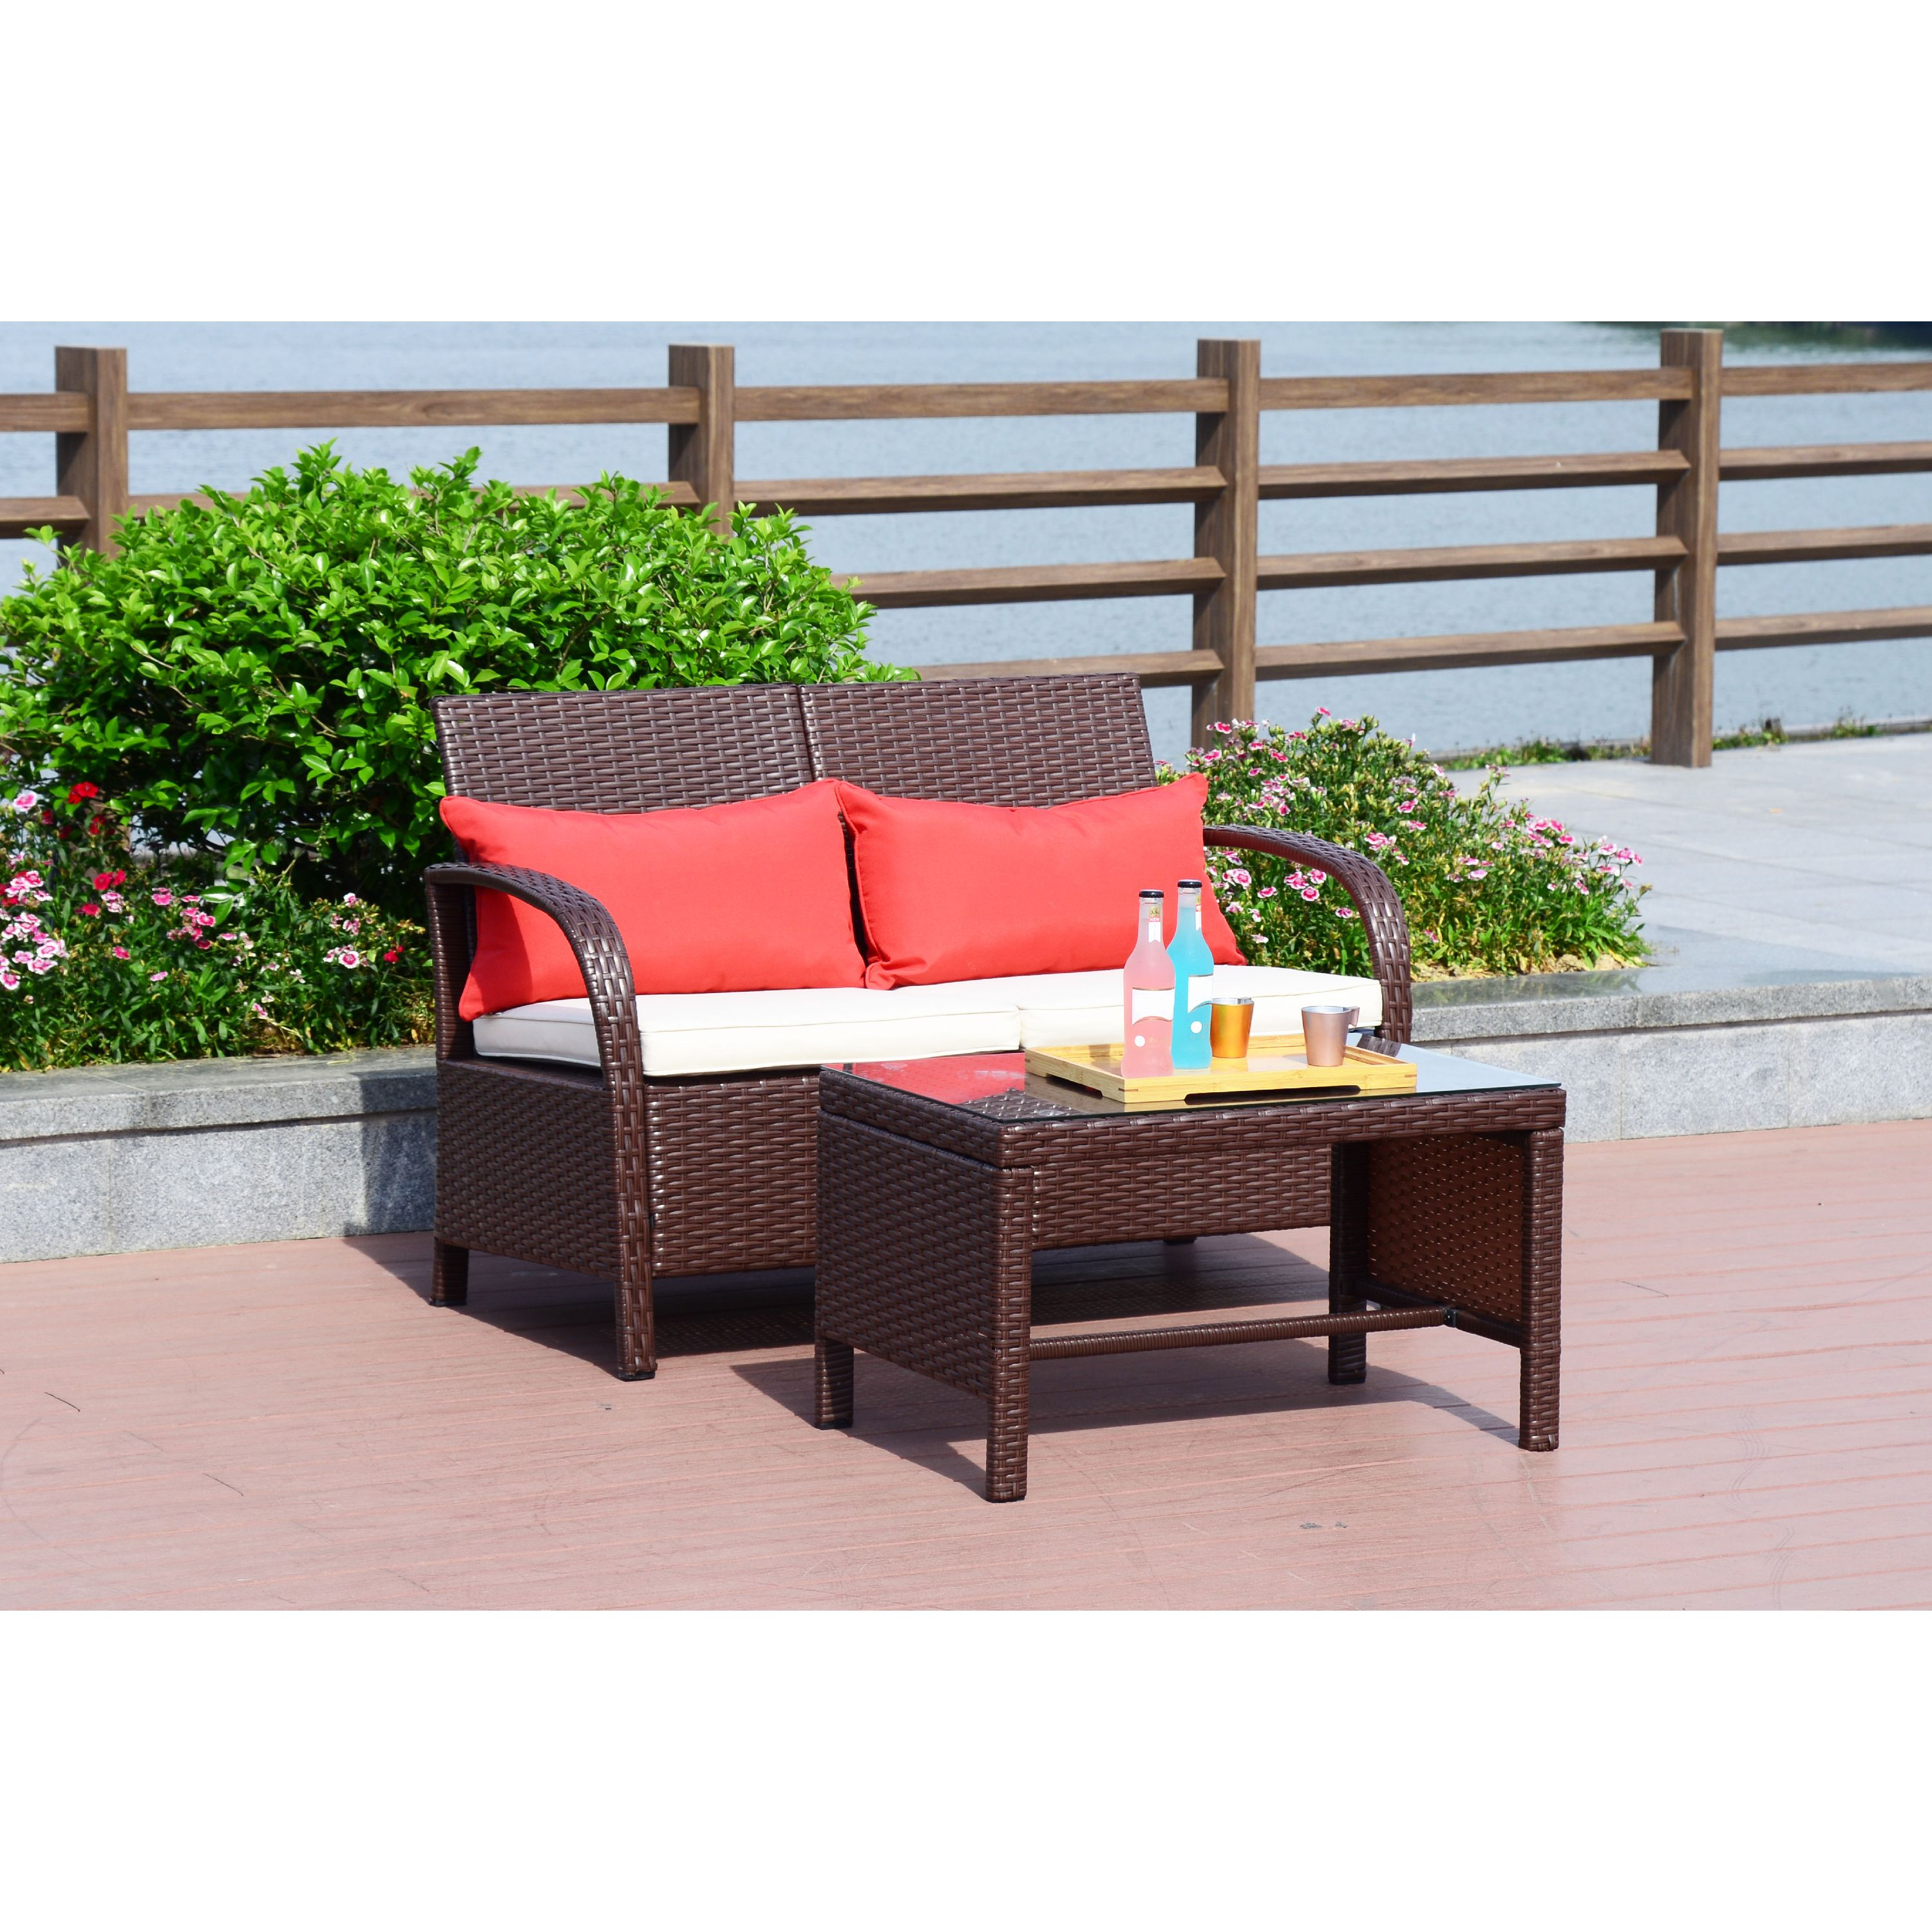 Cloud Mountain 2 PC Rattan Loveseat Sofa Furniture Bistro Set Outdoor Wicker Patio Garden Loveseat Glass Top Table